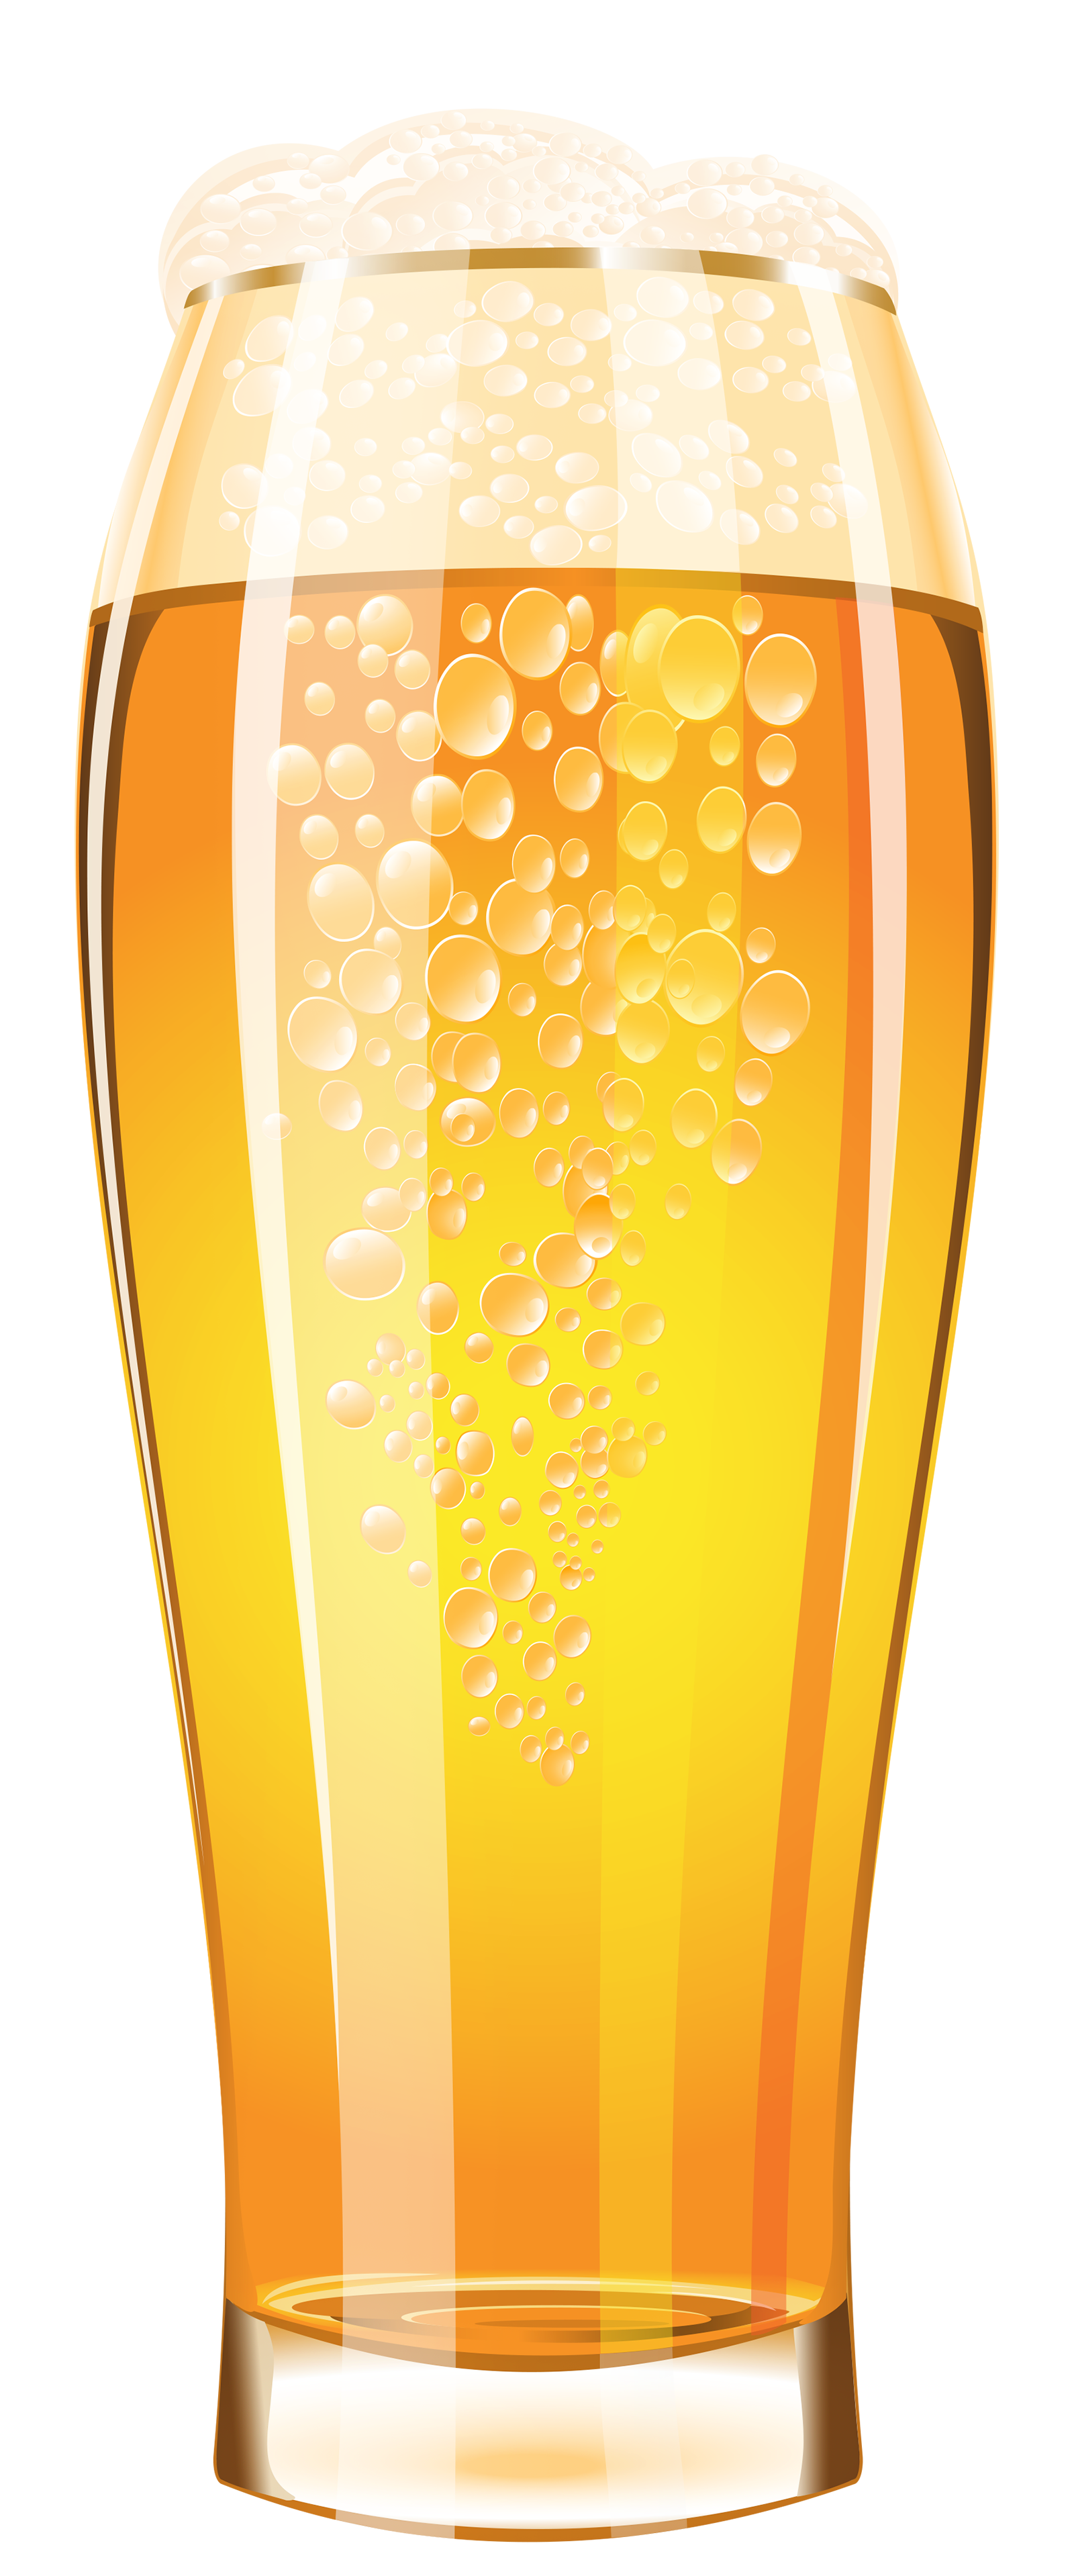 Beer cup png. Glass of vector clipart